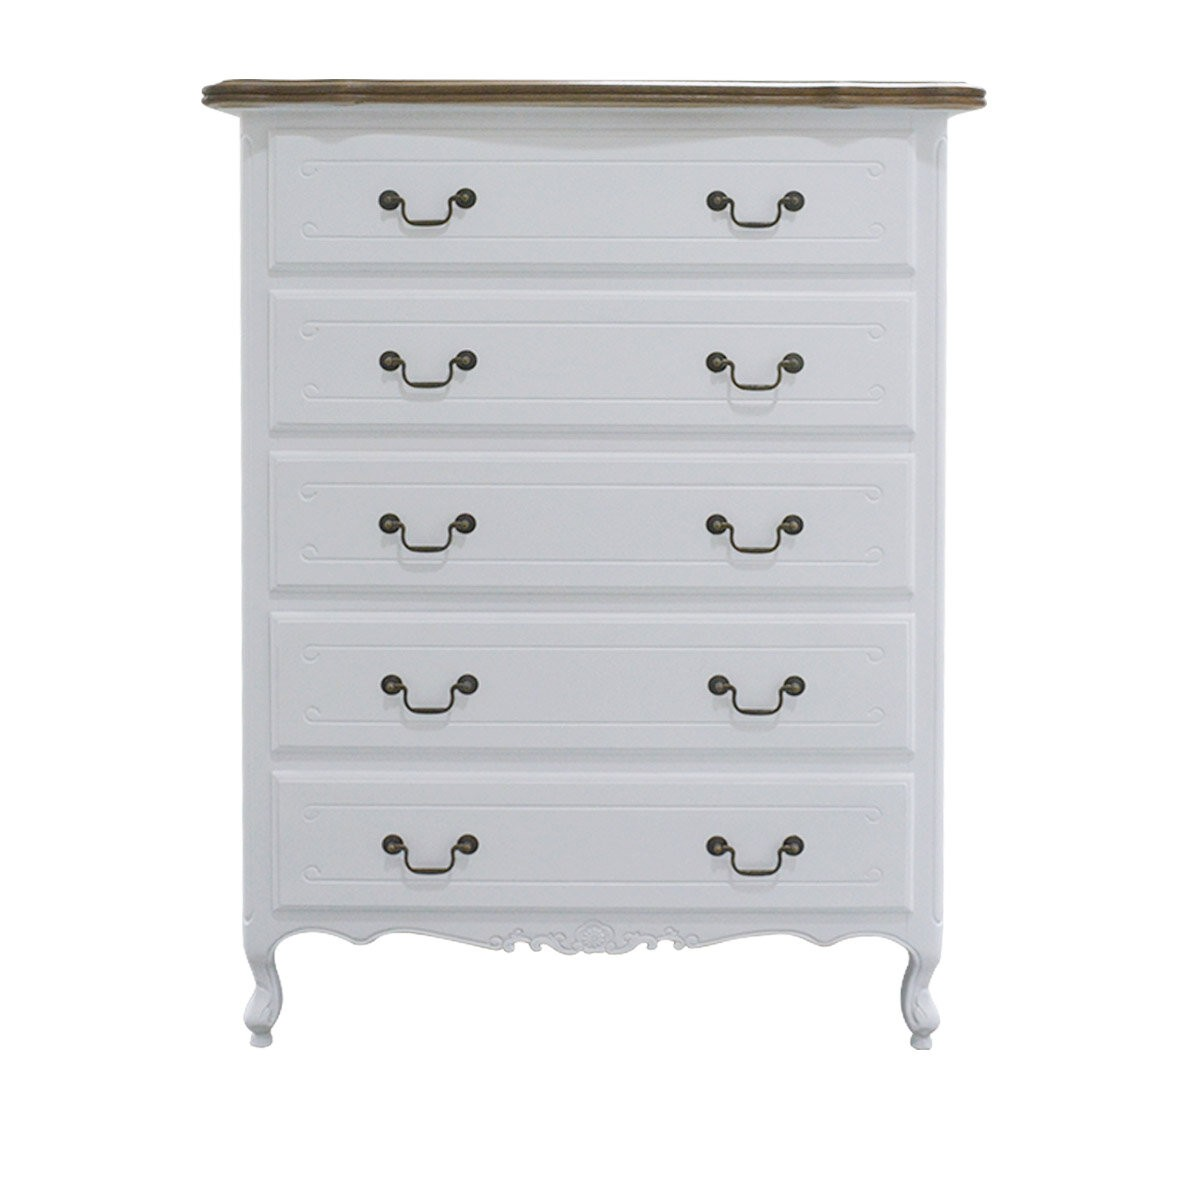 French Provincial Furniture 5 Chest Of Drawers Tallboy Cabinet In